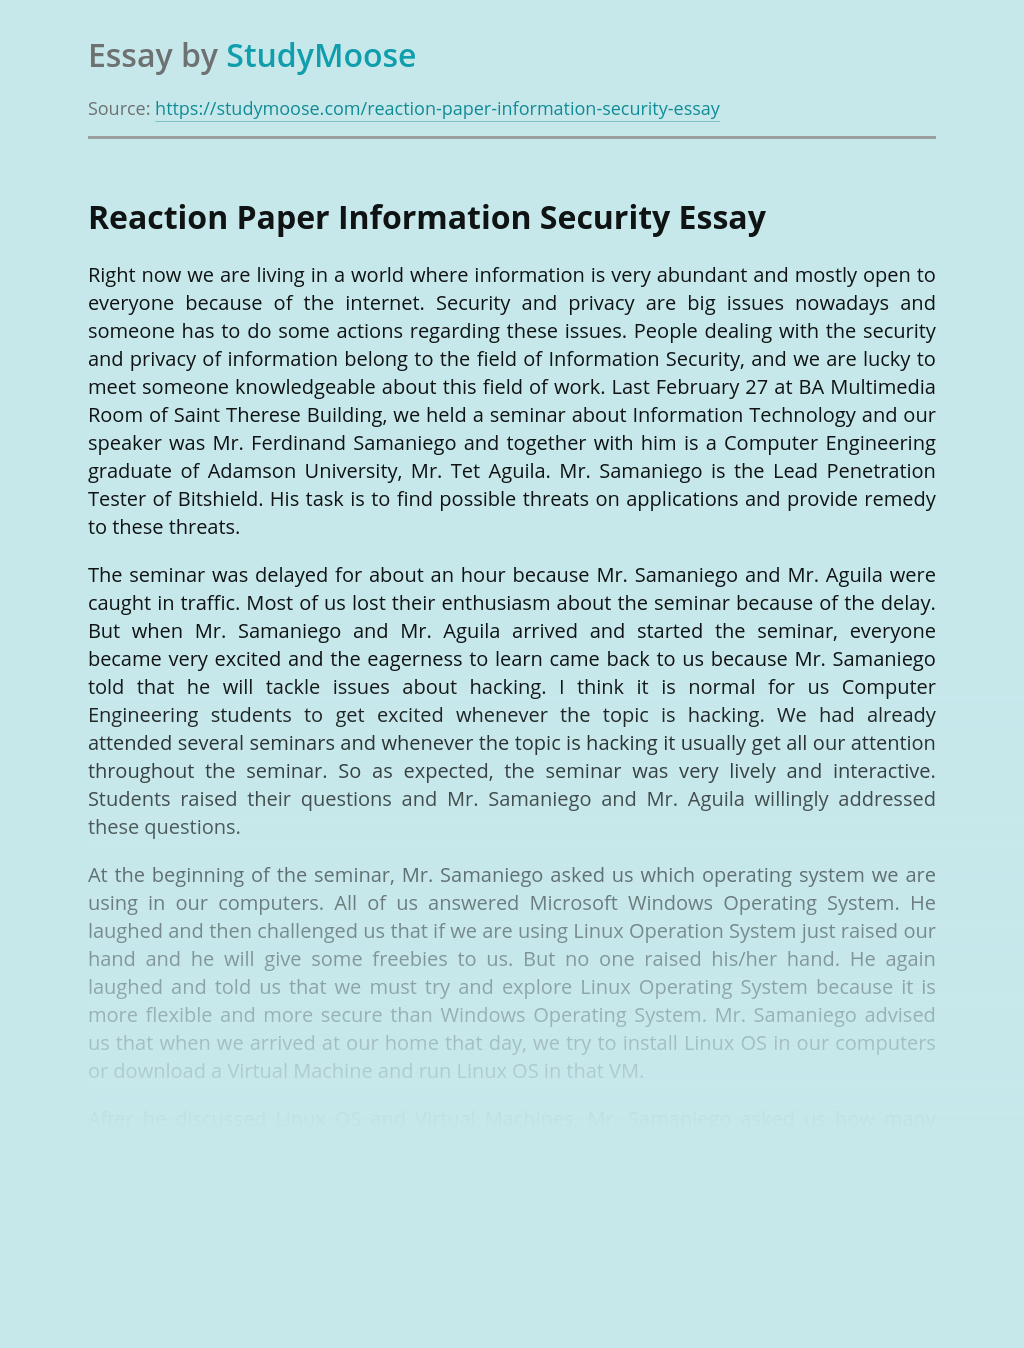 Reaction Paper Information Security